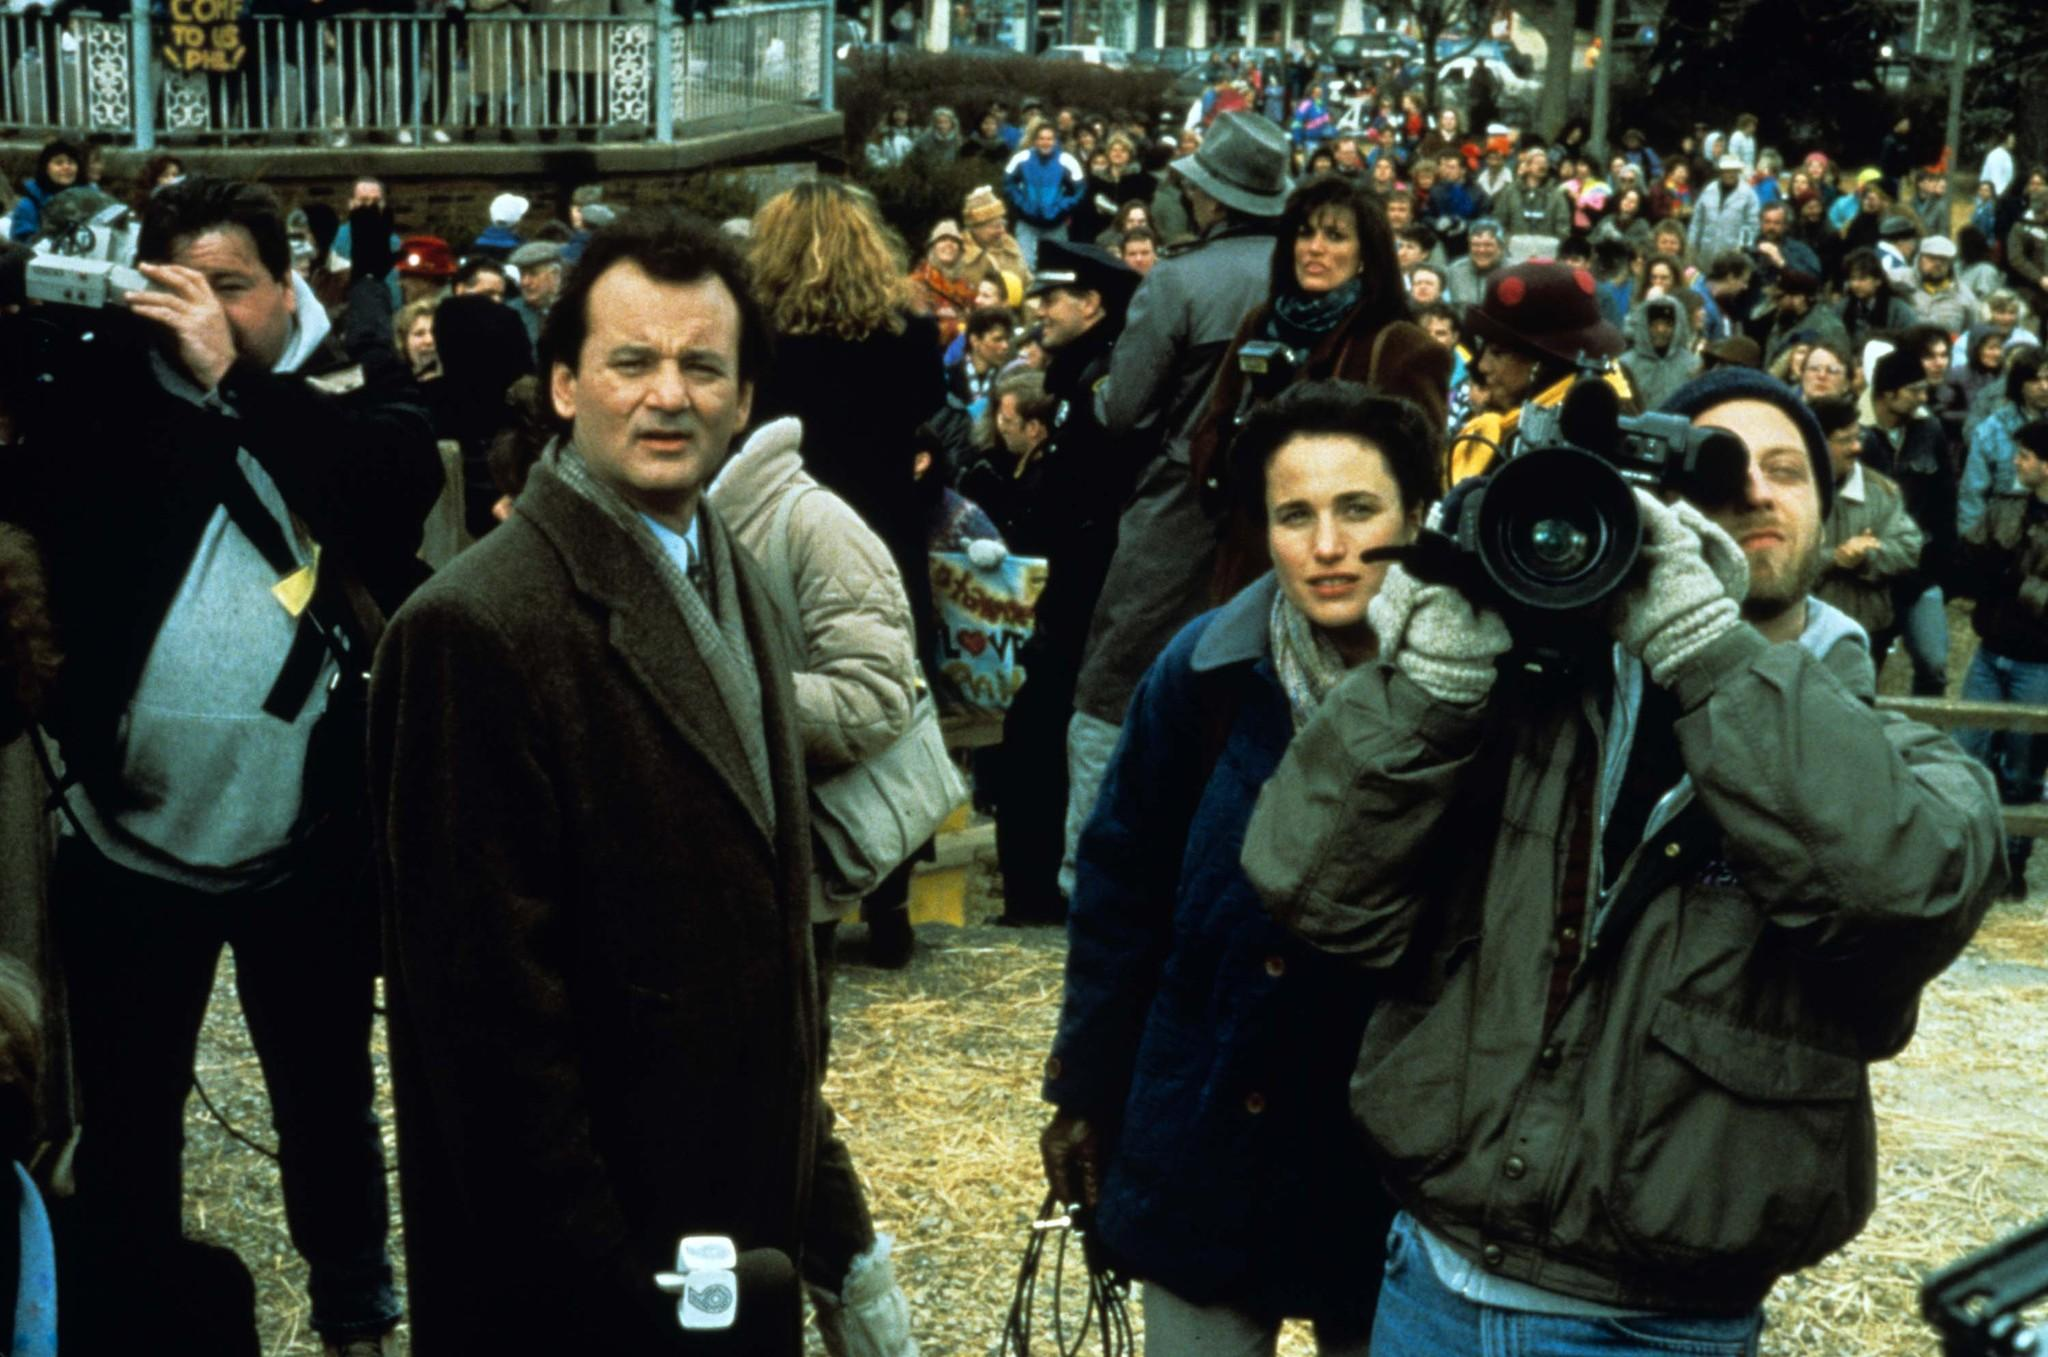 bill-murray-andie-macdowell-and-chris-elliott-in-groundhog-day-(1993)-large-picture